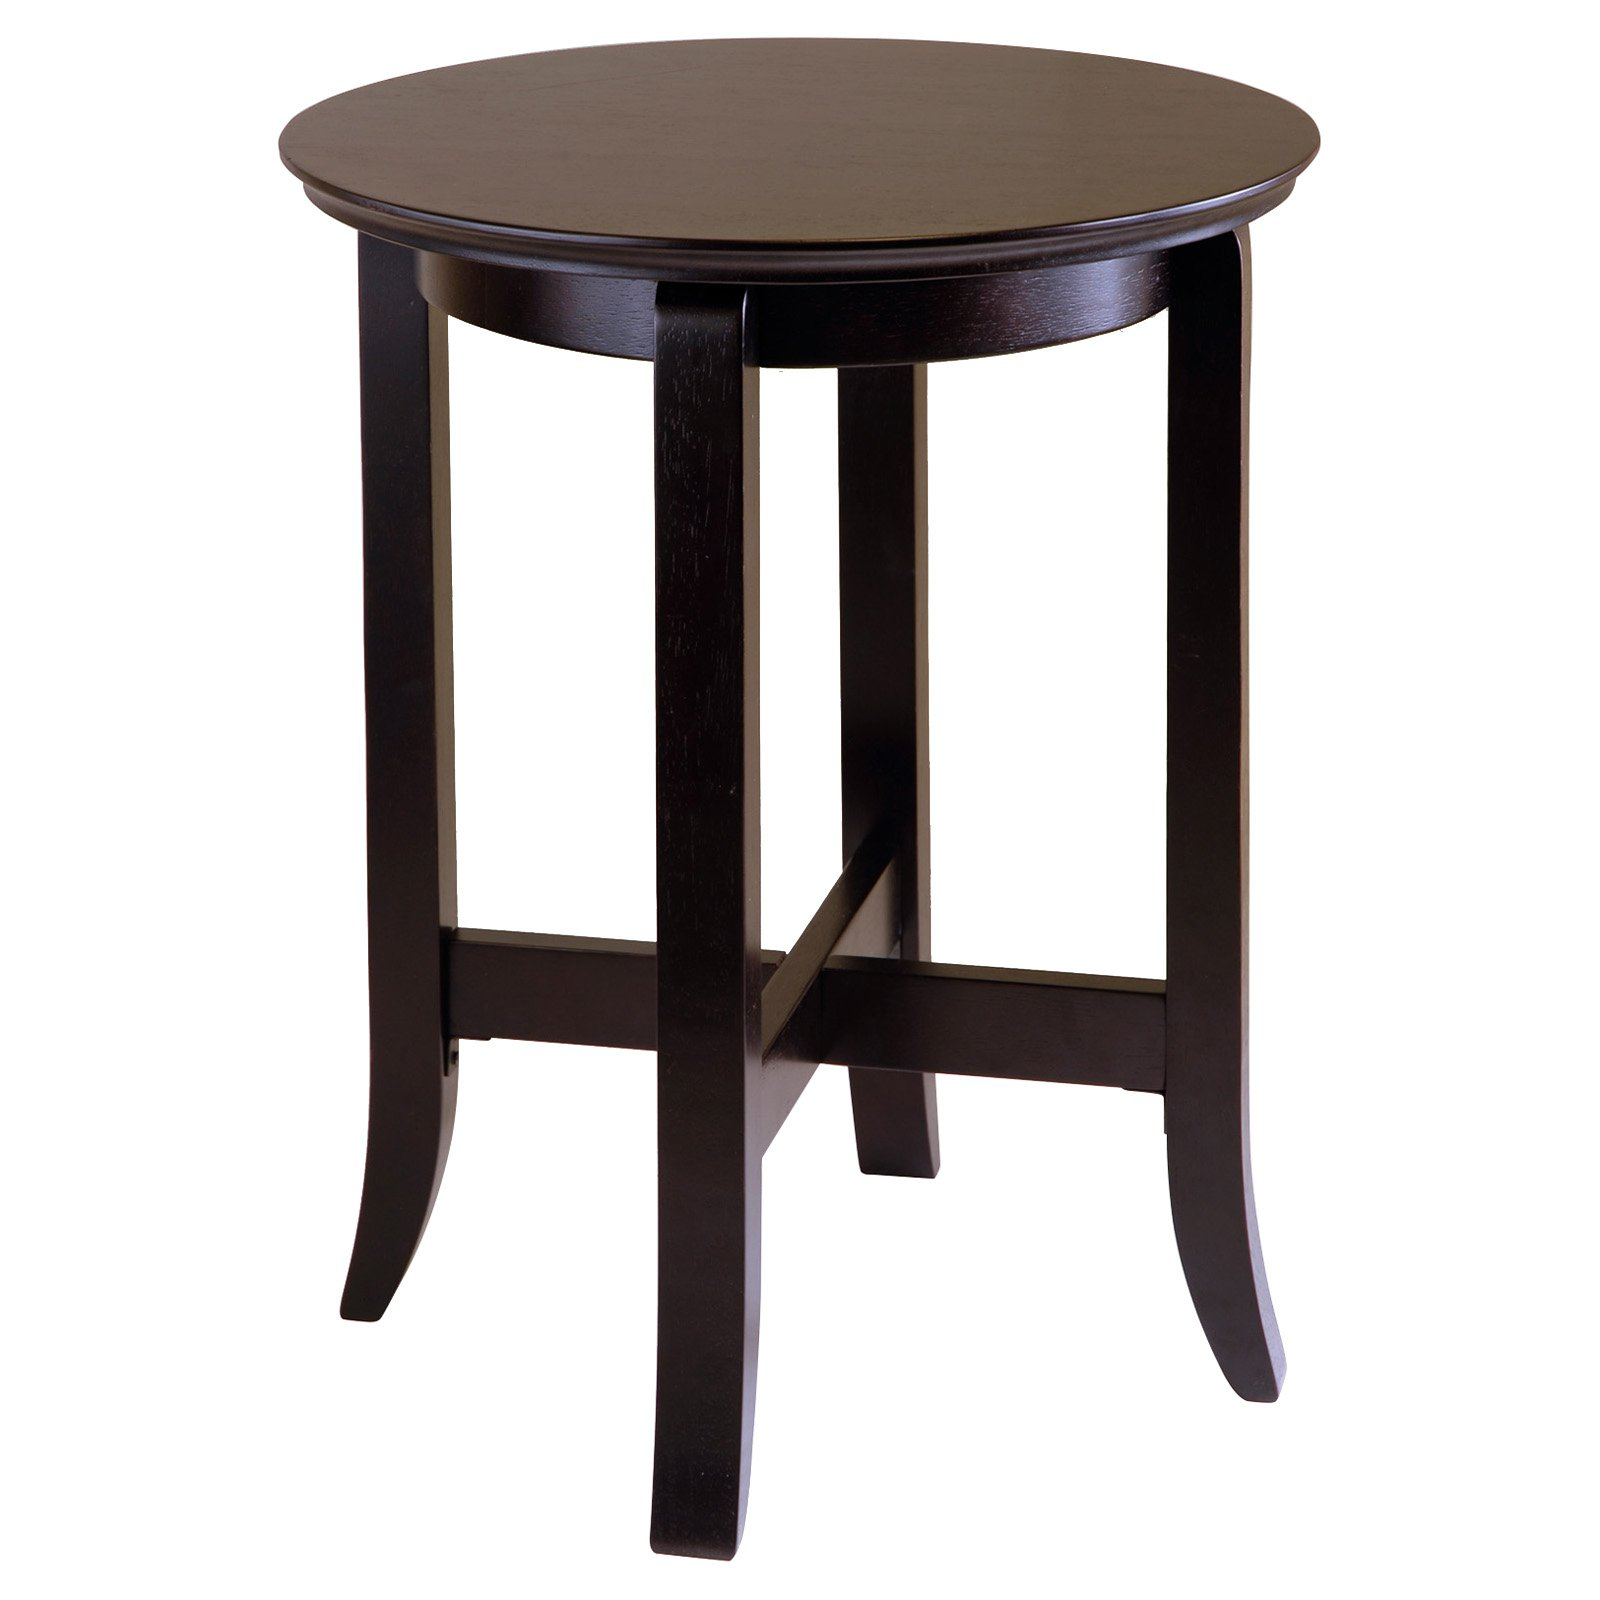 winsome wood toby round accent table espresso finish inch wide sofa black coffee with glass oak door strip cool outdoor furniture tudor ott winnipeg fine linens bedside drawers